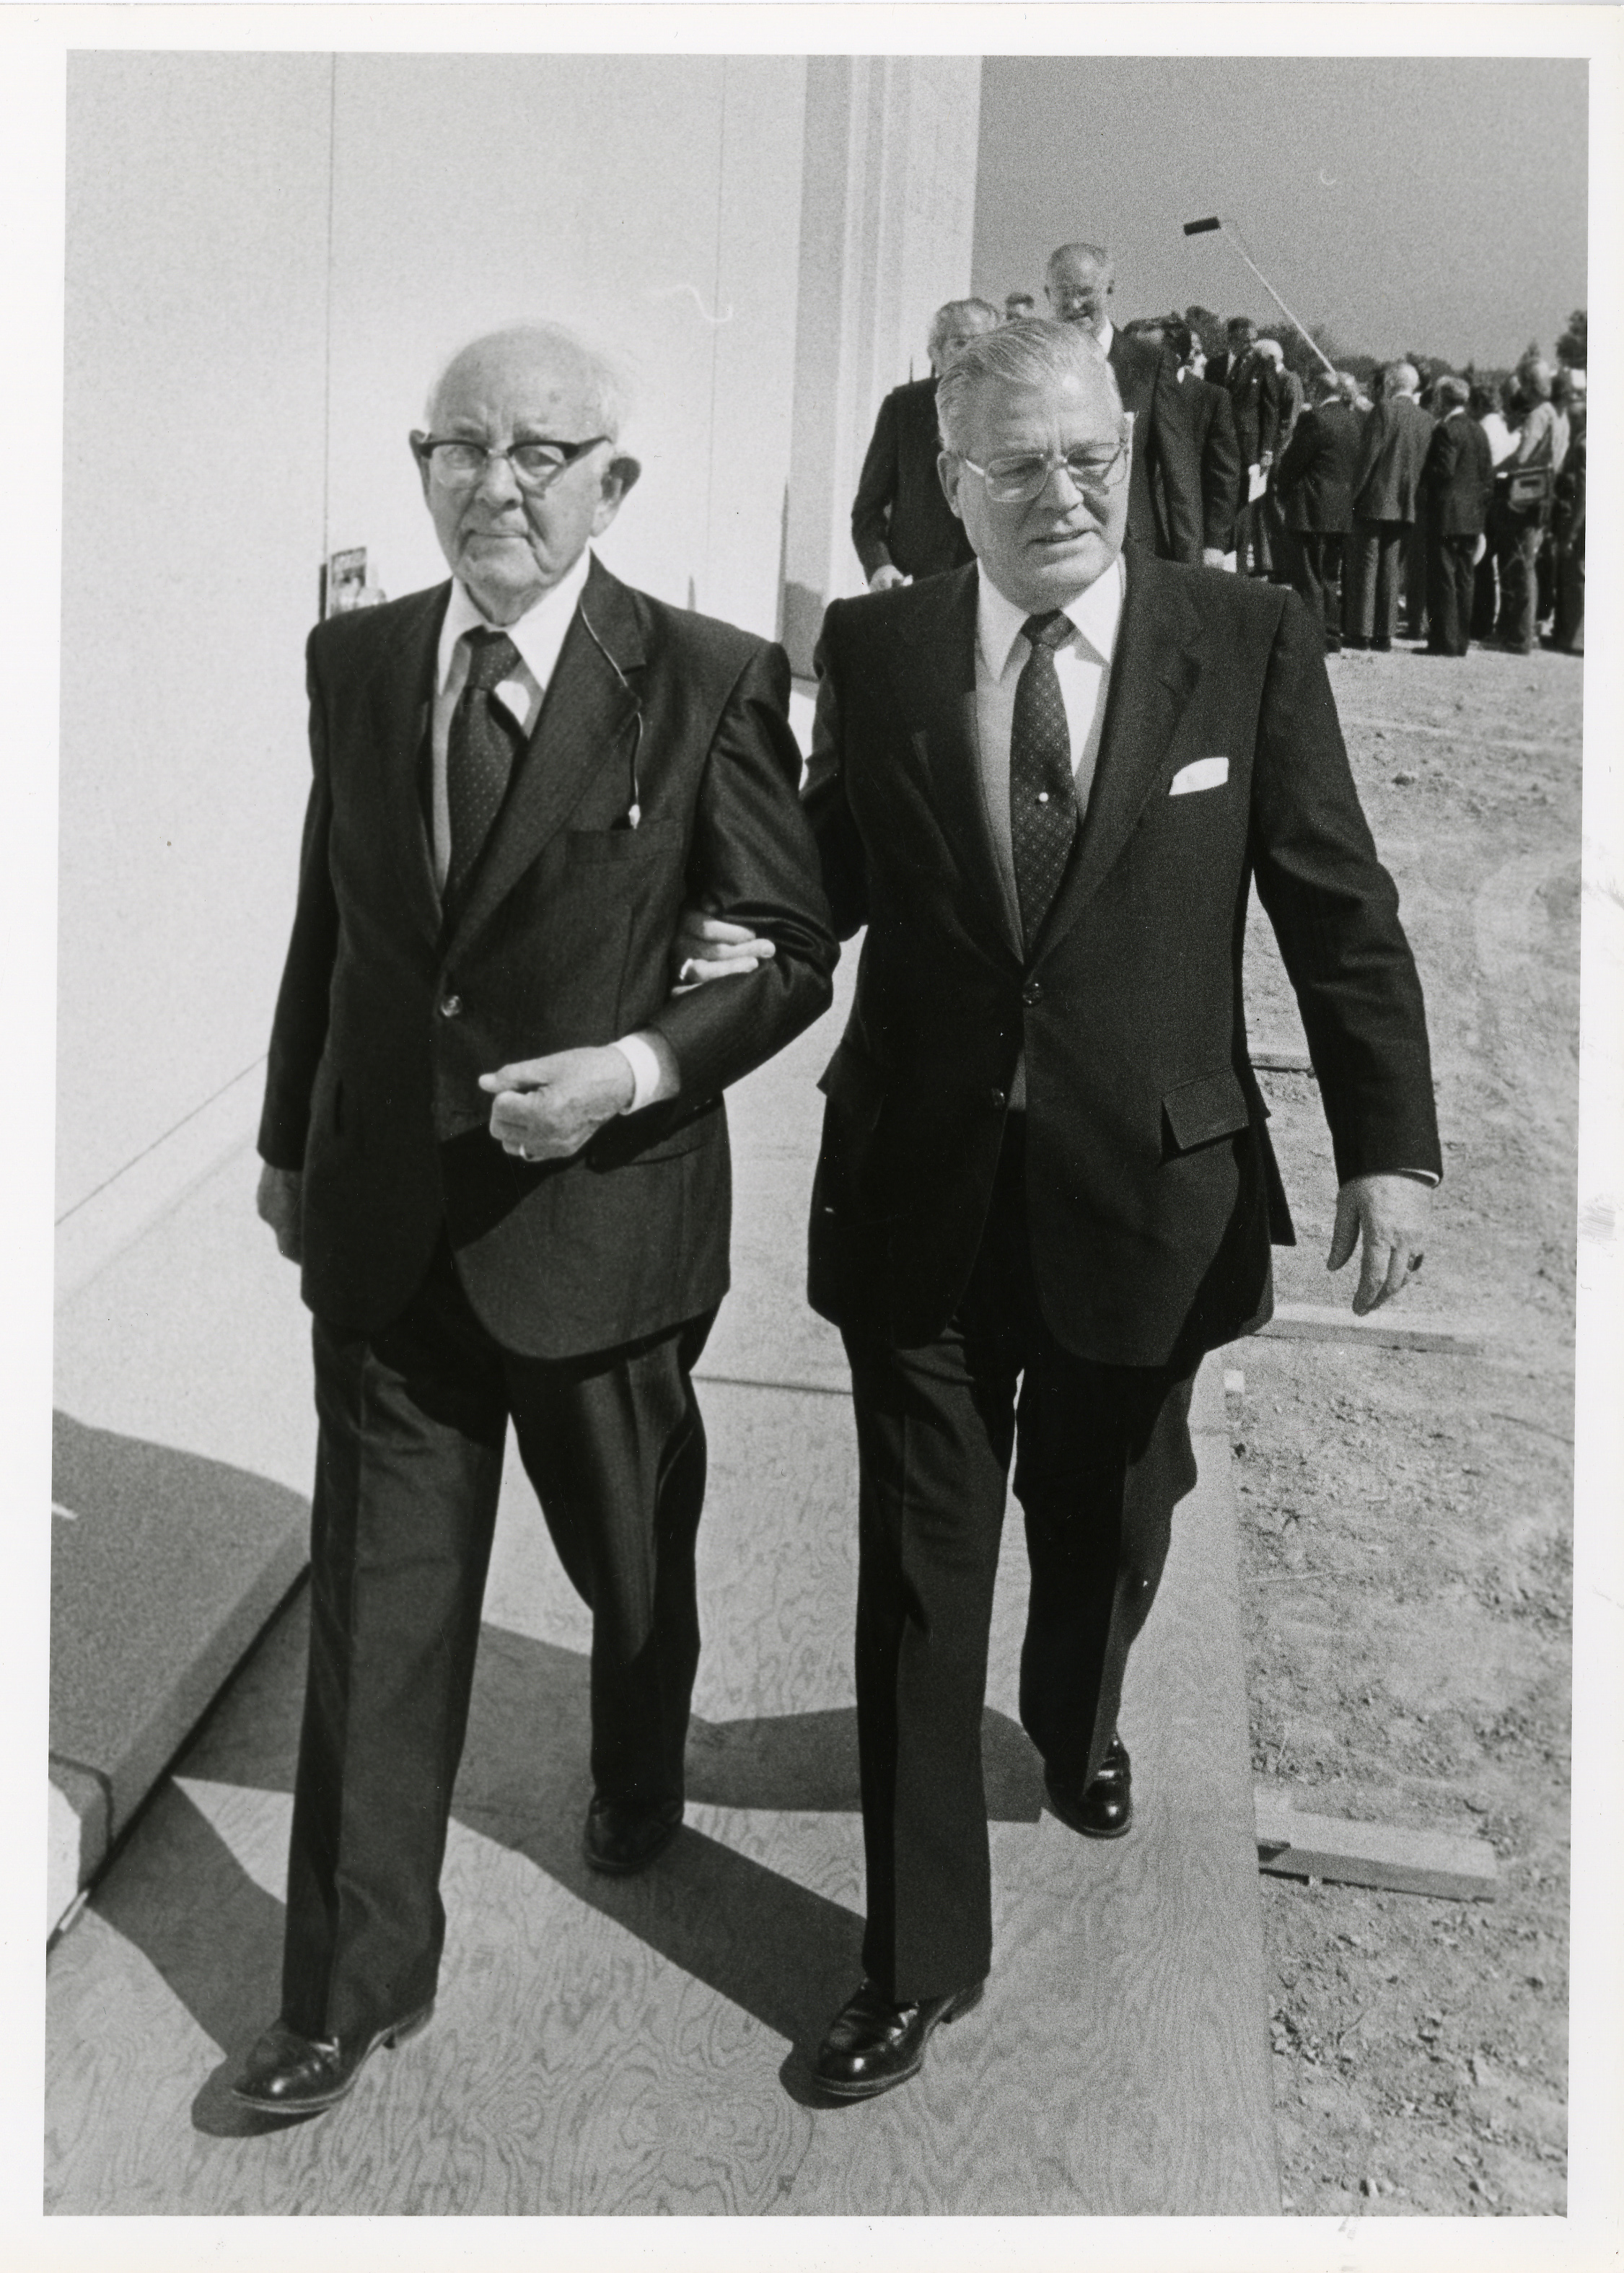 Spencer W. Kimball, president of the Church is being escorted by his secretary D. Arthur Haycock for the dedication of the Jordan River Utah Temple in 1981.